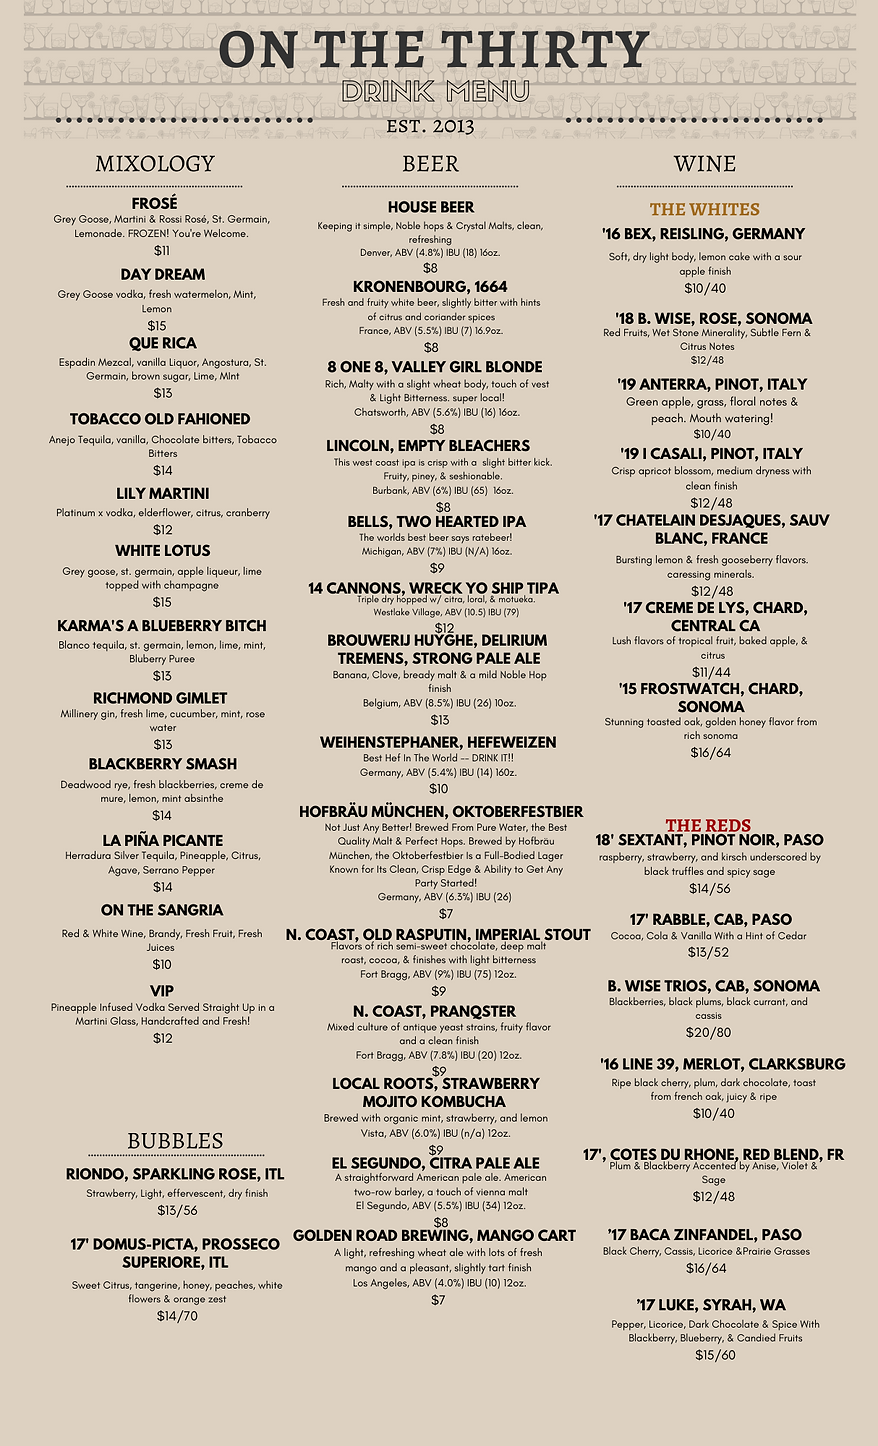 Copy of ON THE THIRTY - DRINK MENU.png